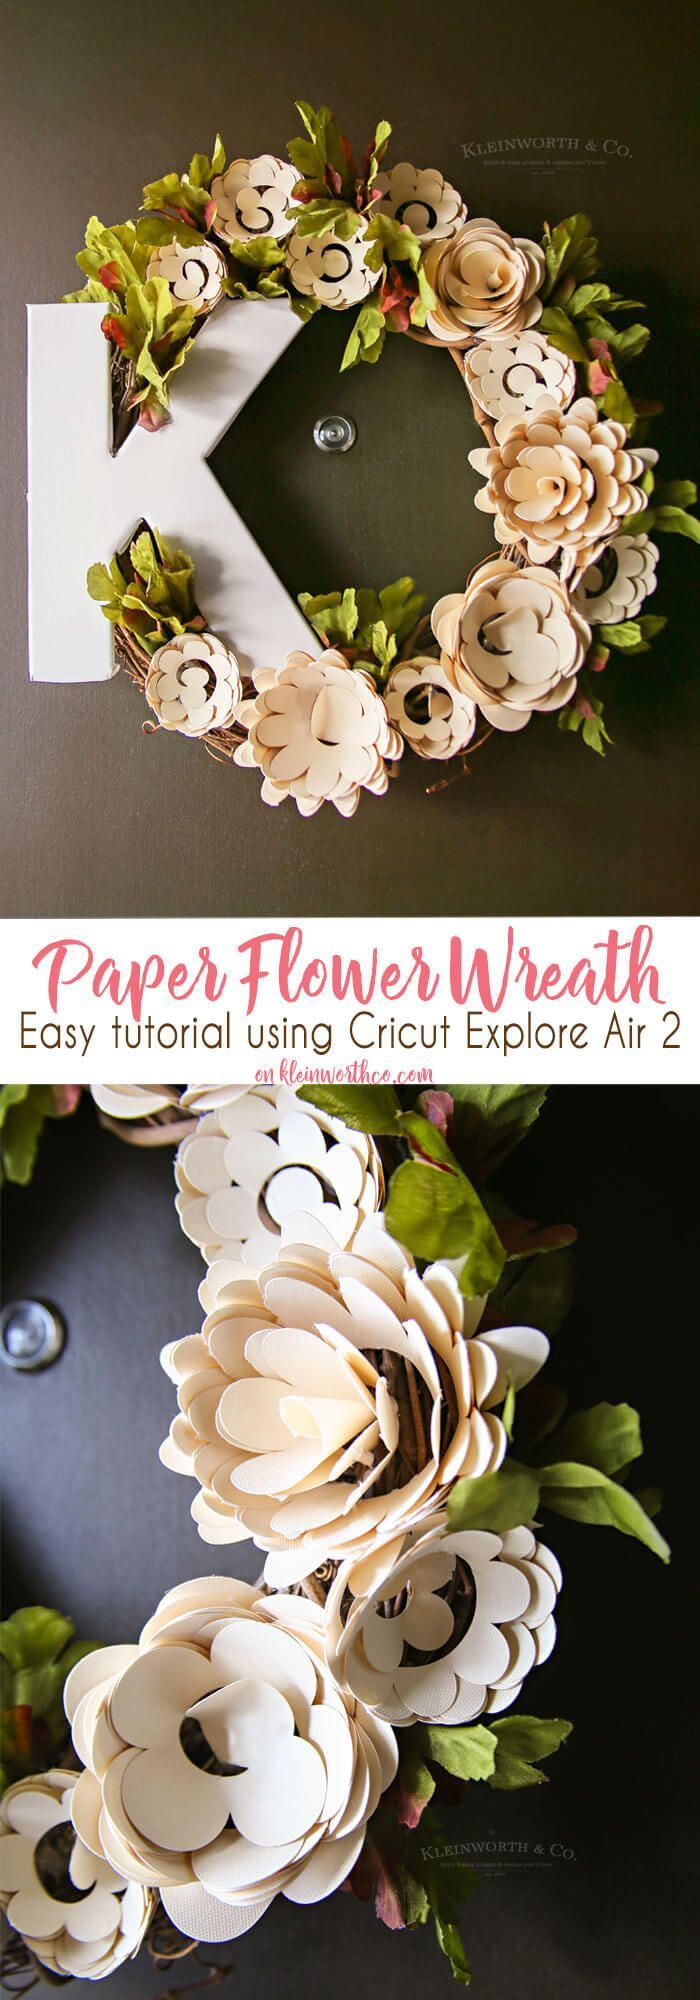 Paper Flower Wreath Cricut Tutorial is a super fun way to dress up your door for spring! Super easy how-to with Cricut Explore Air 2. via @KleinworthCo